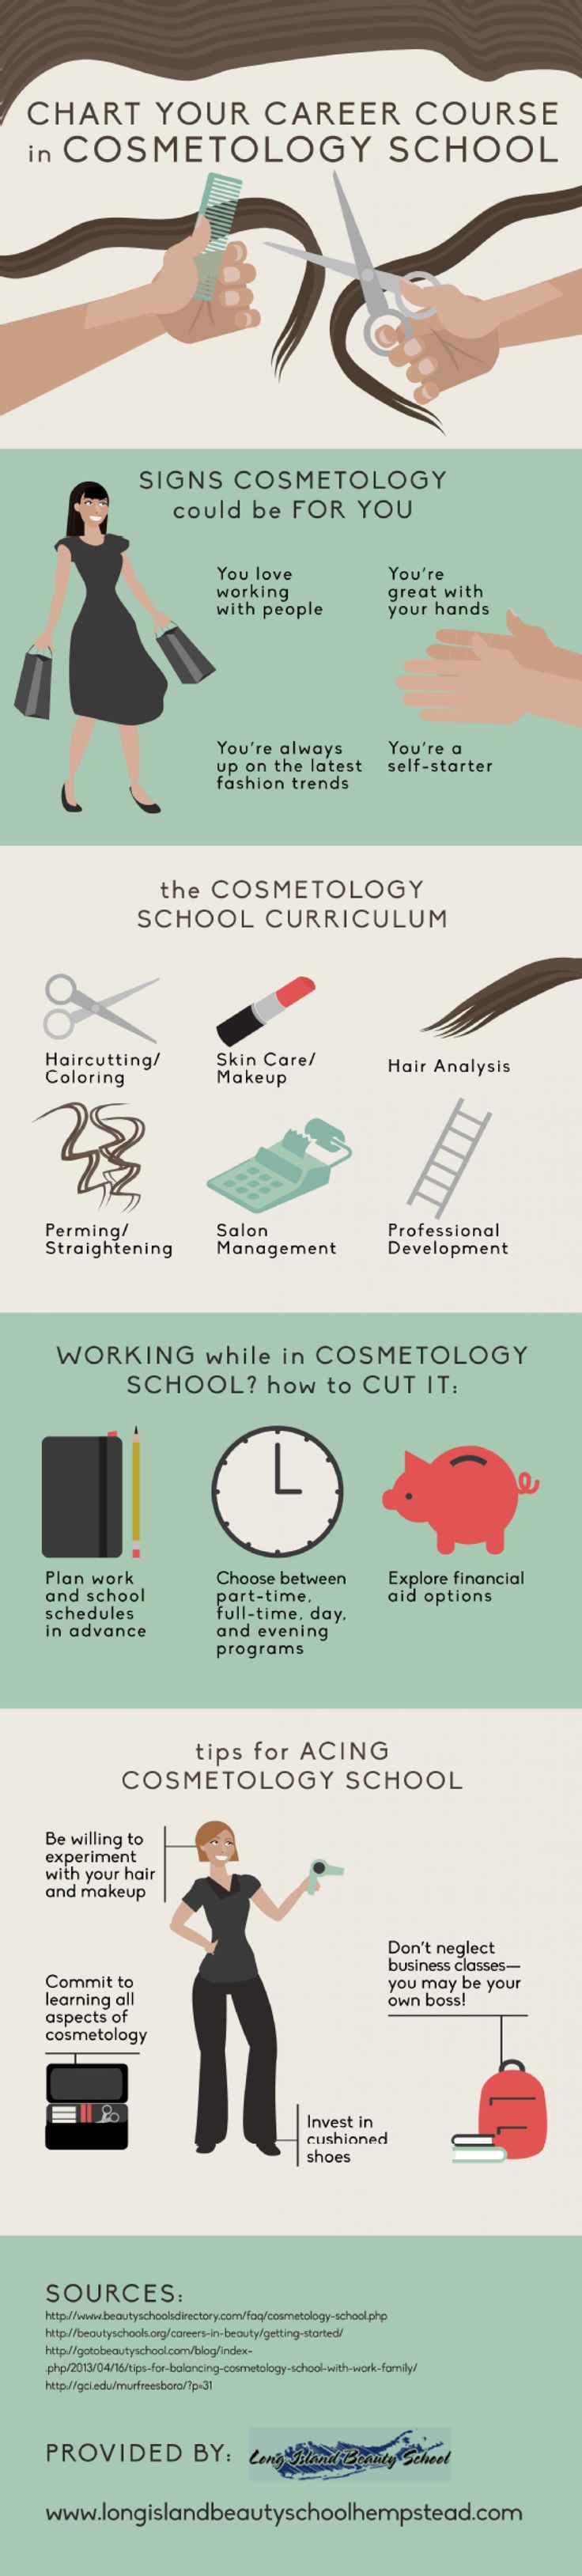 Chart your career course in cosmetology school